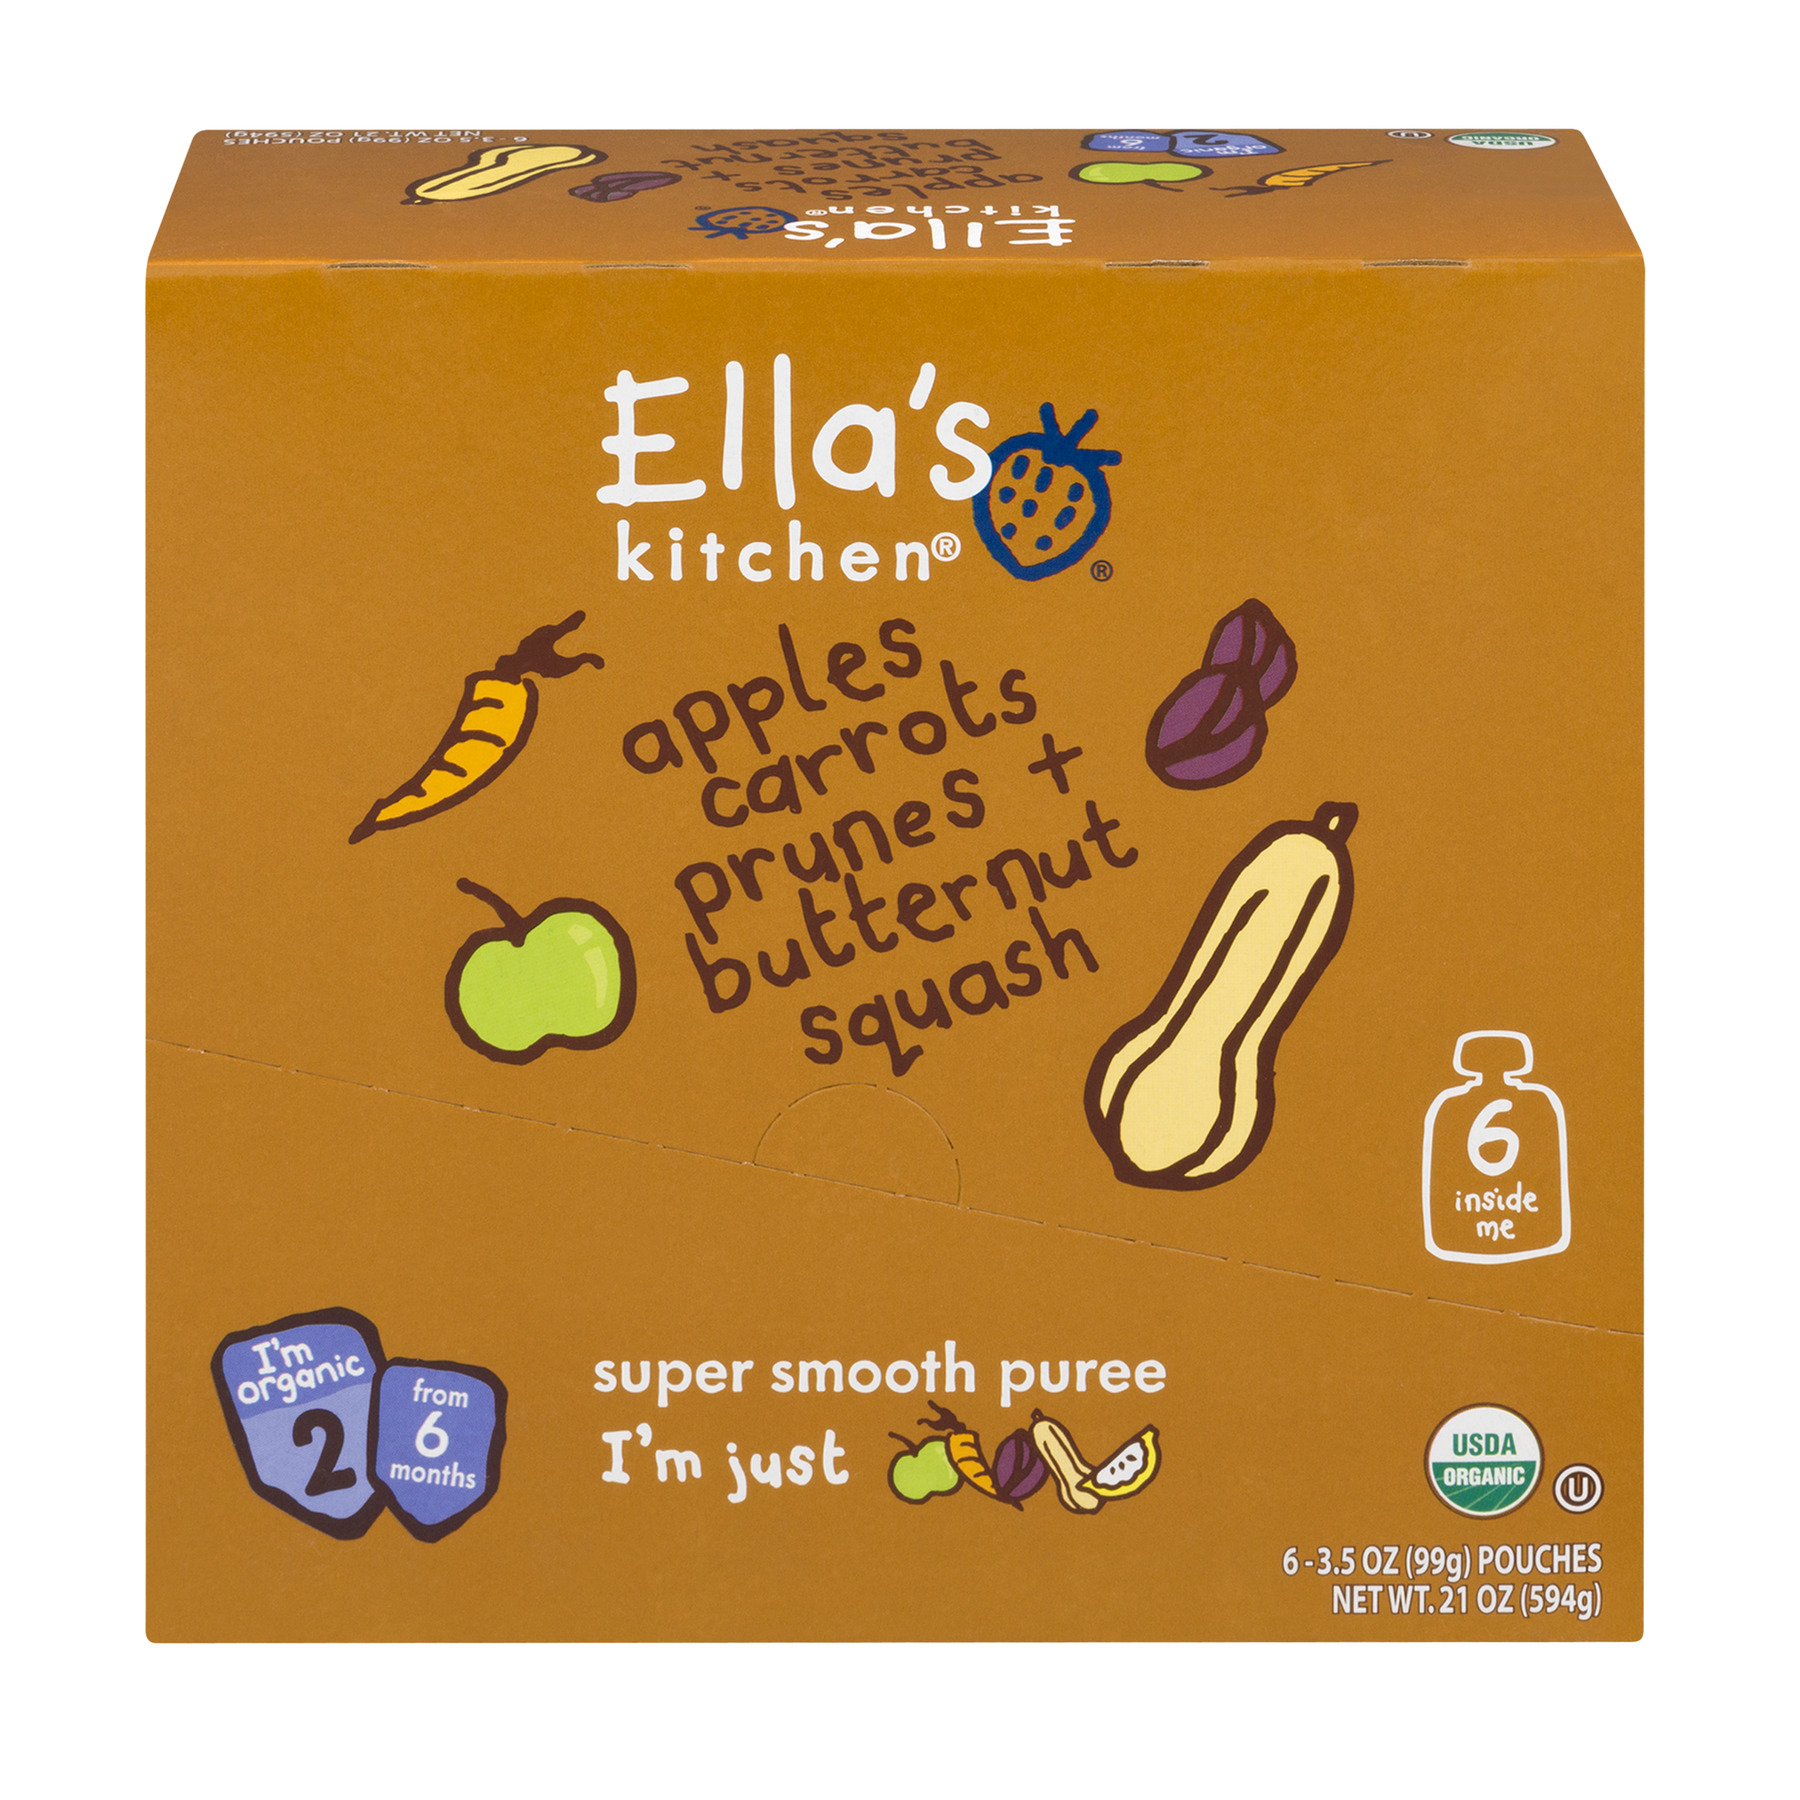 Ella's Kitchen 6+ Months Organic Baby Food, Apples Carrots Prunes + Butternut Squash, 3.5 oz. (Pack of 6)